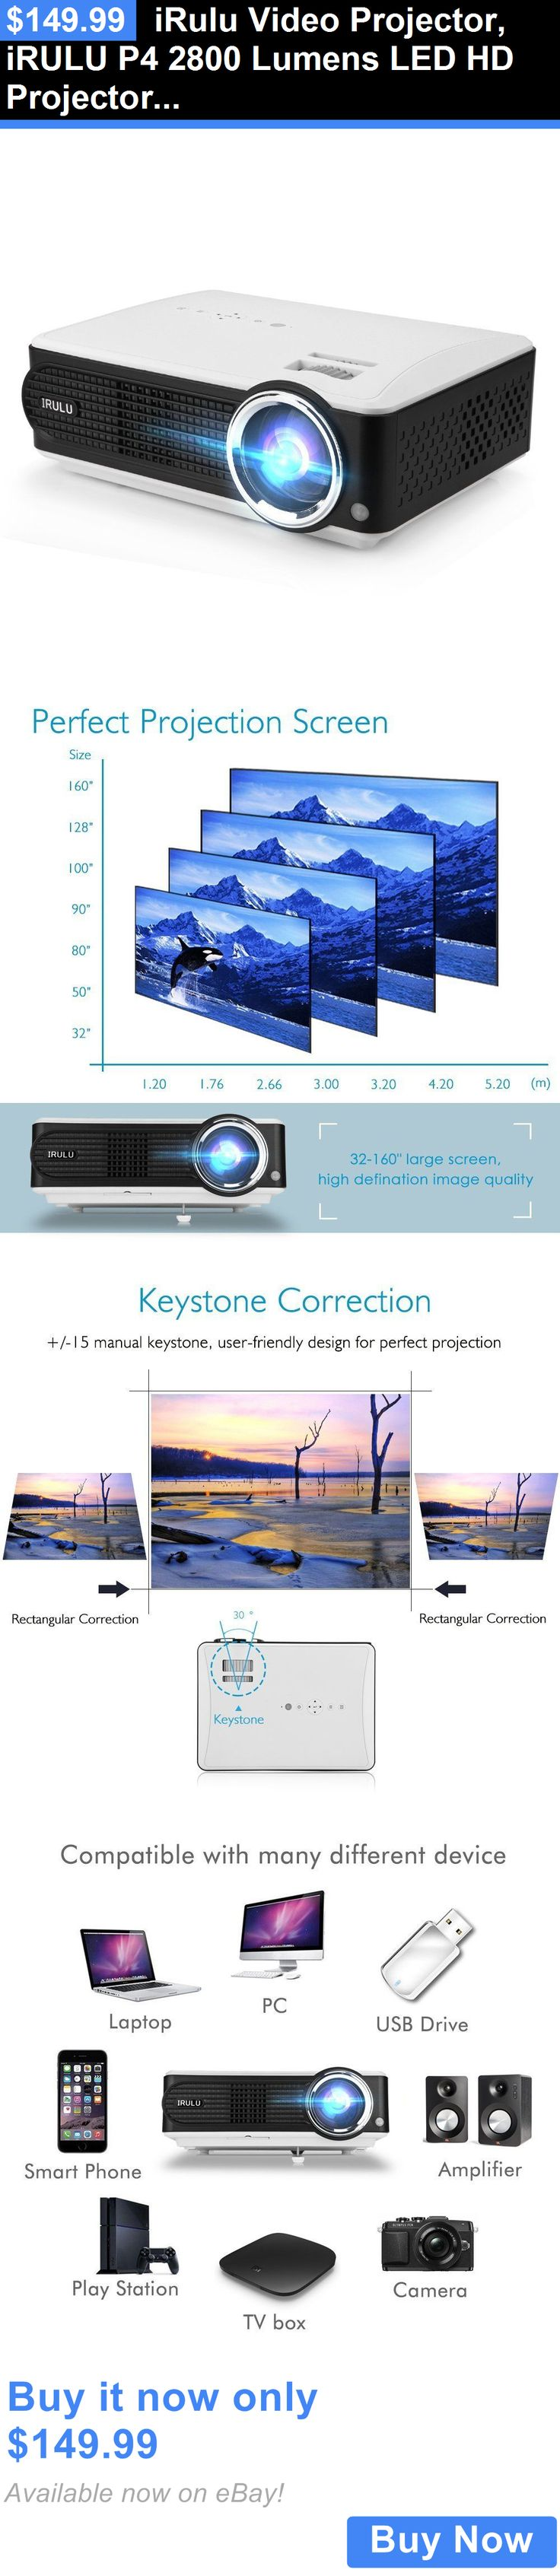 Home Theater Projectors: Irulu Video Projector, Irulu P4 2800 Lumens Led Hd Projector, 1080P. BUY IT NOW ONLY: $149.99